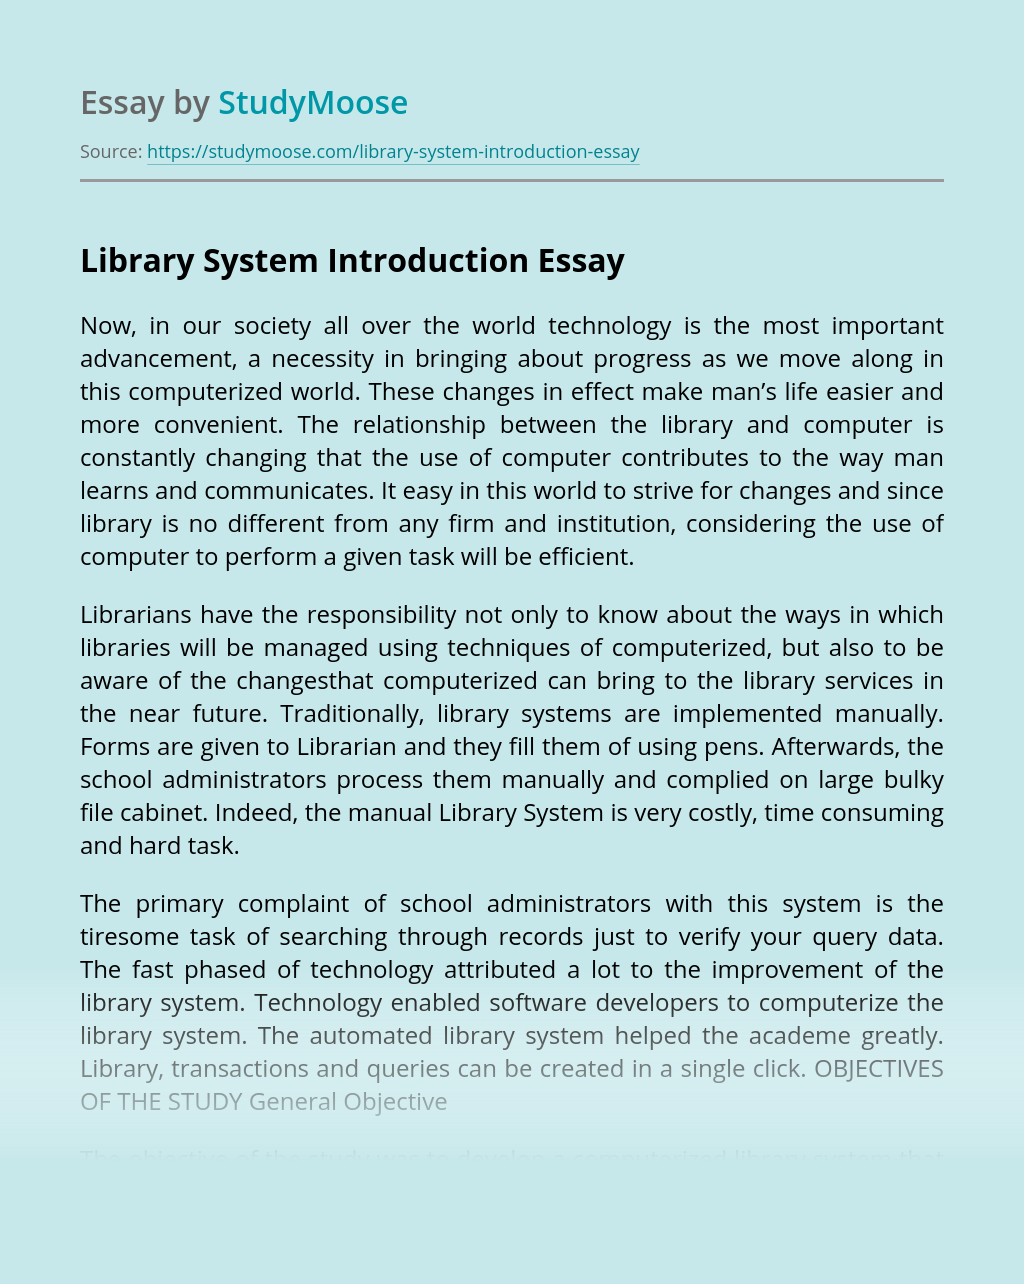 Library System Introduction